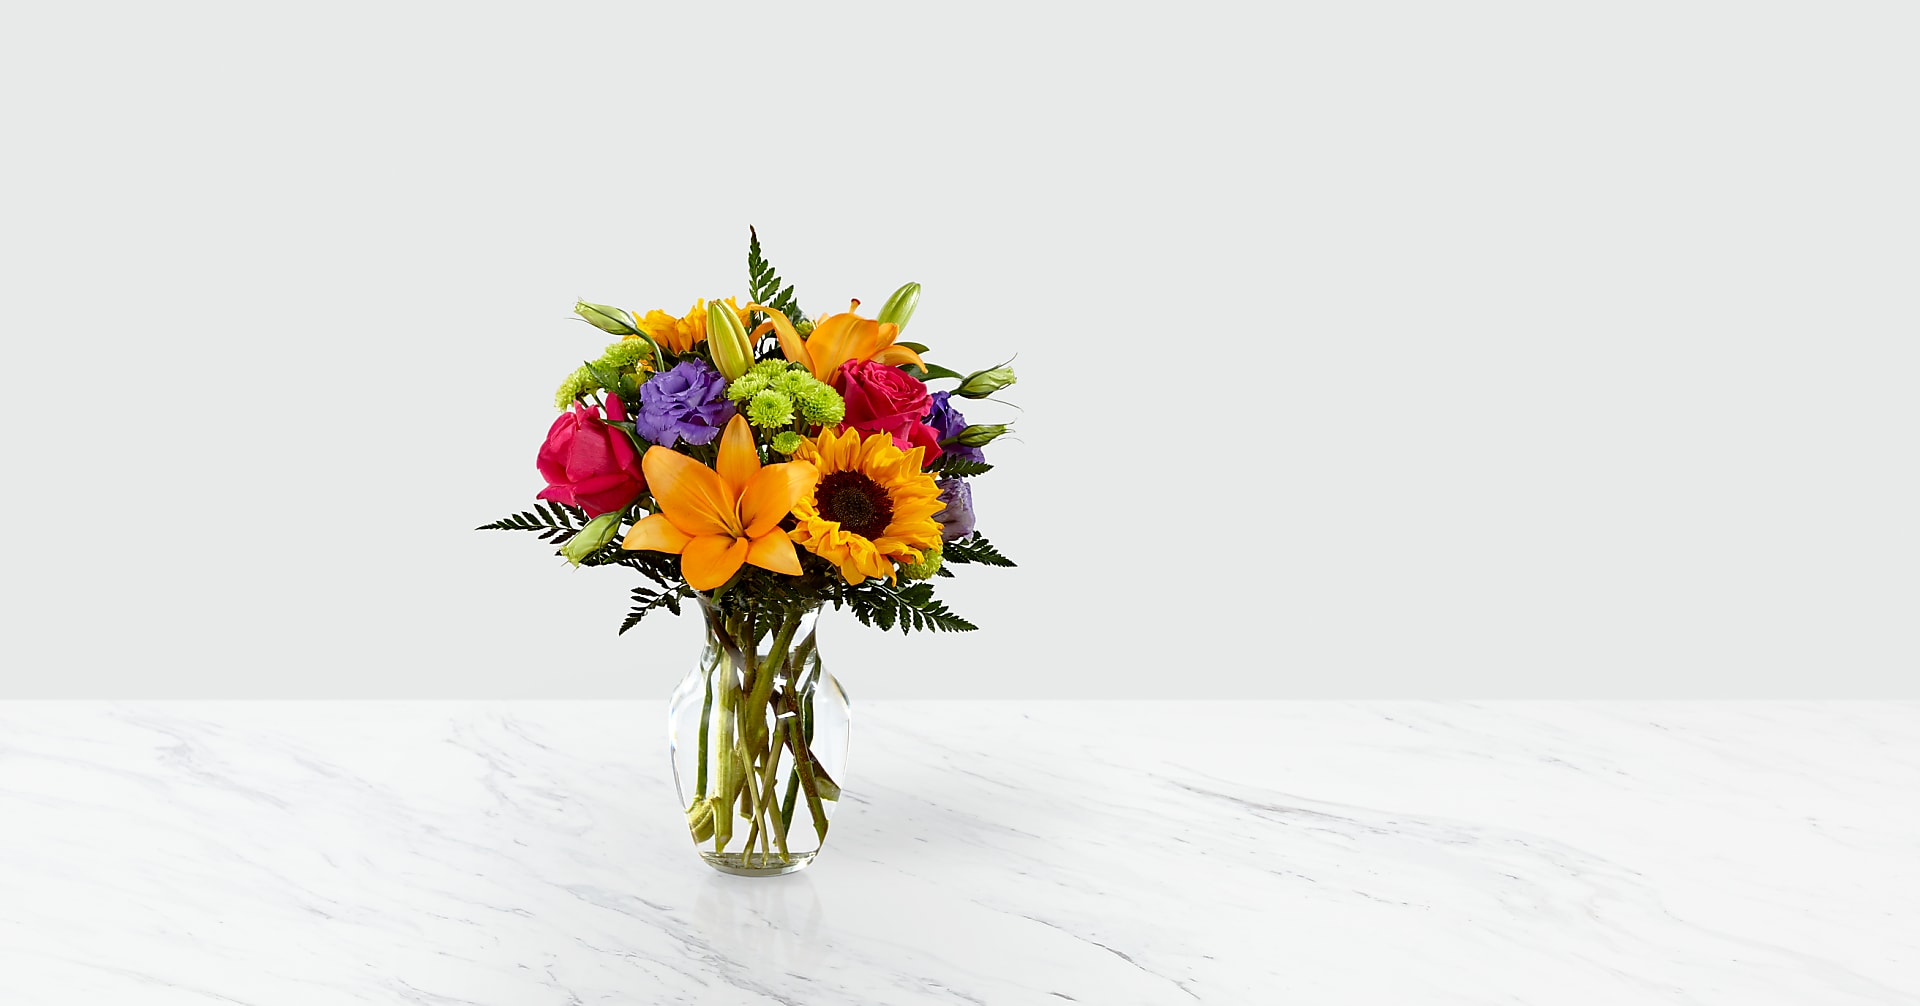 Best Day Bouquet - Image 1 Of 5